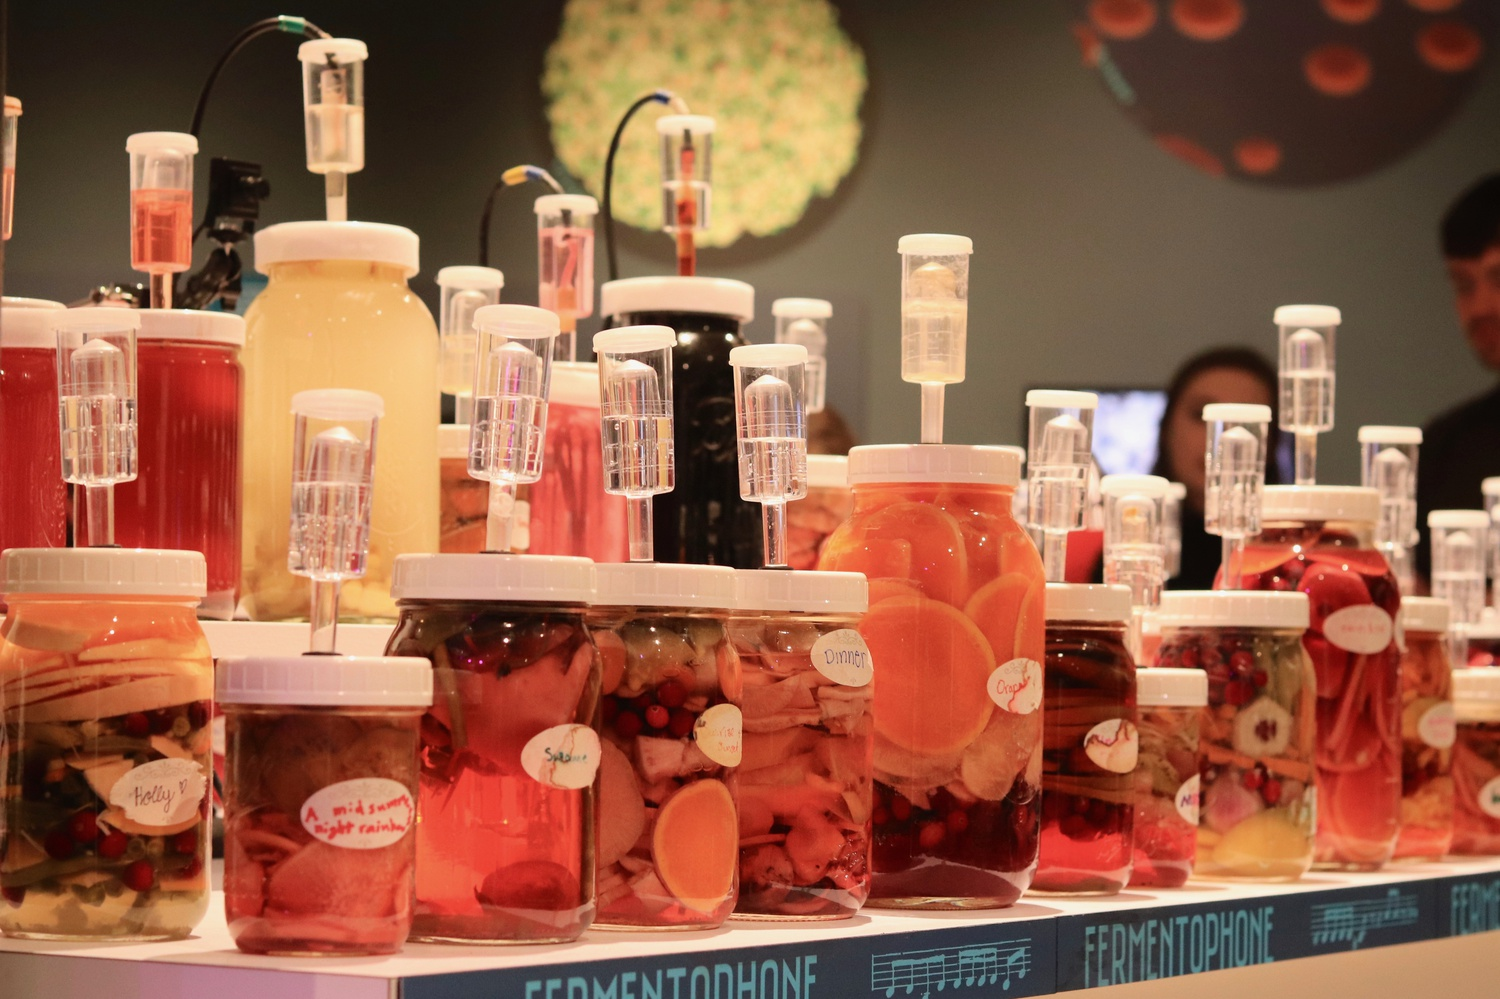 Jars of fermented food, which artist Joshua Pablo Rosenstock uses as musical instruments, are on display at the Museum of Natural History.